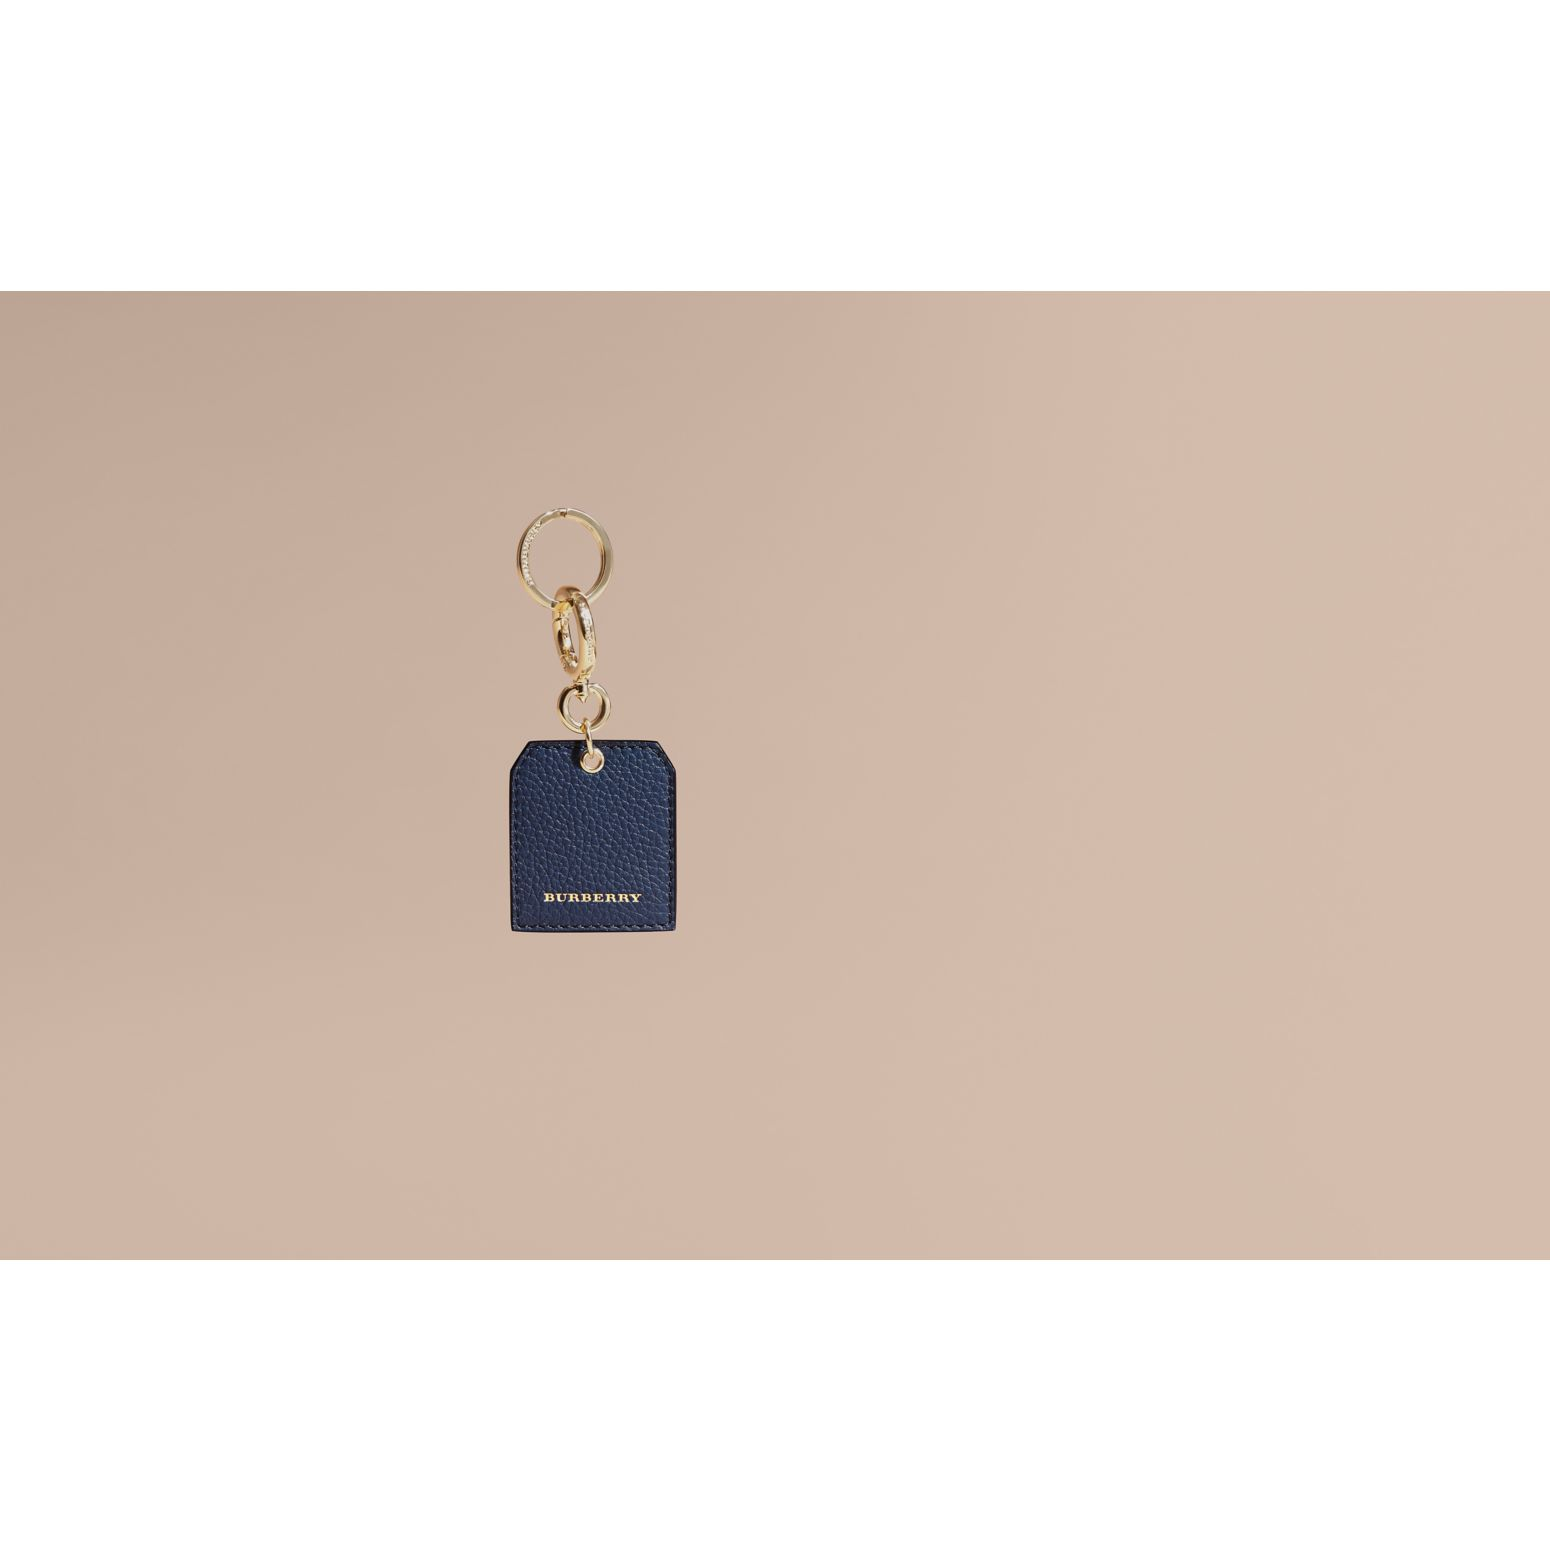 Grainy Leather Key Charm in Bright Navy - Women | Burberry - gallery image 2